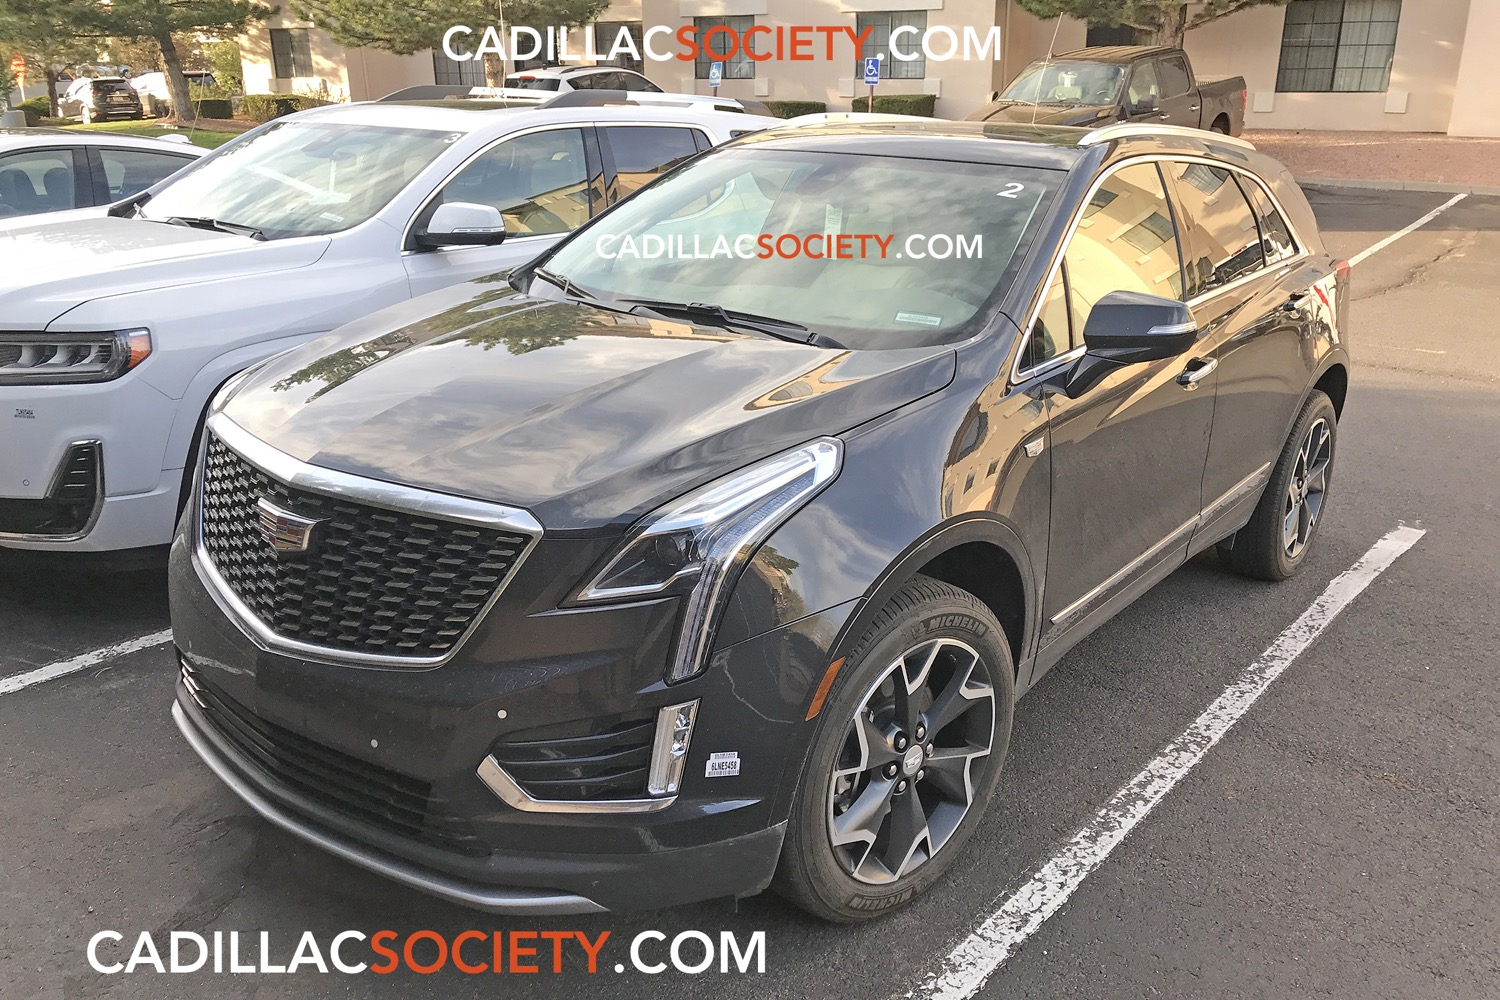 2020 Cadillac XT5 Finally Features Engine Auto Stop-Start ...